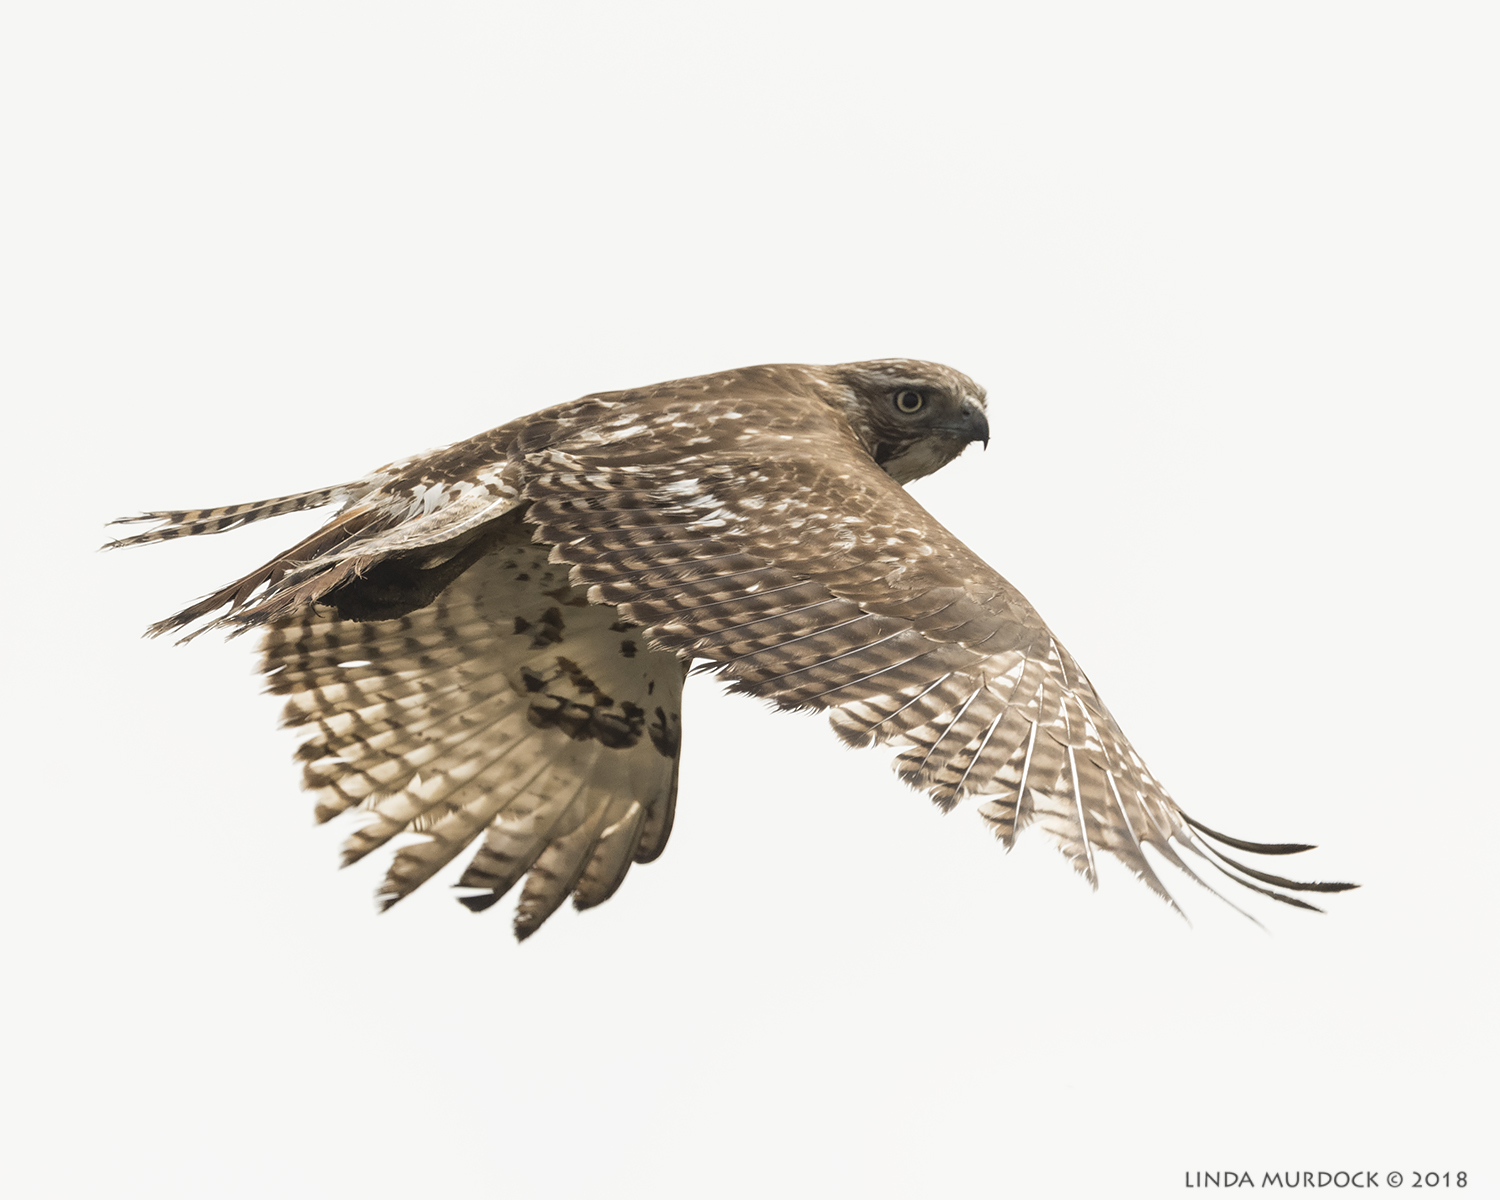 Another Red-tailed Hawk  ikon D810 with NIKKOR 500mm f/4E VR + Nikon 1.4x TC ~ 1/2500  sec f/7.1 ISO 640; braced in truck window